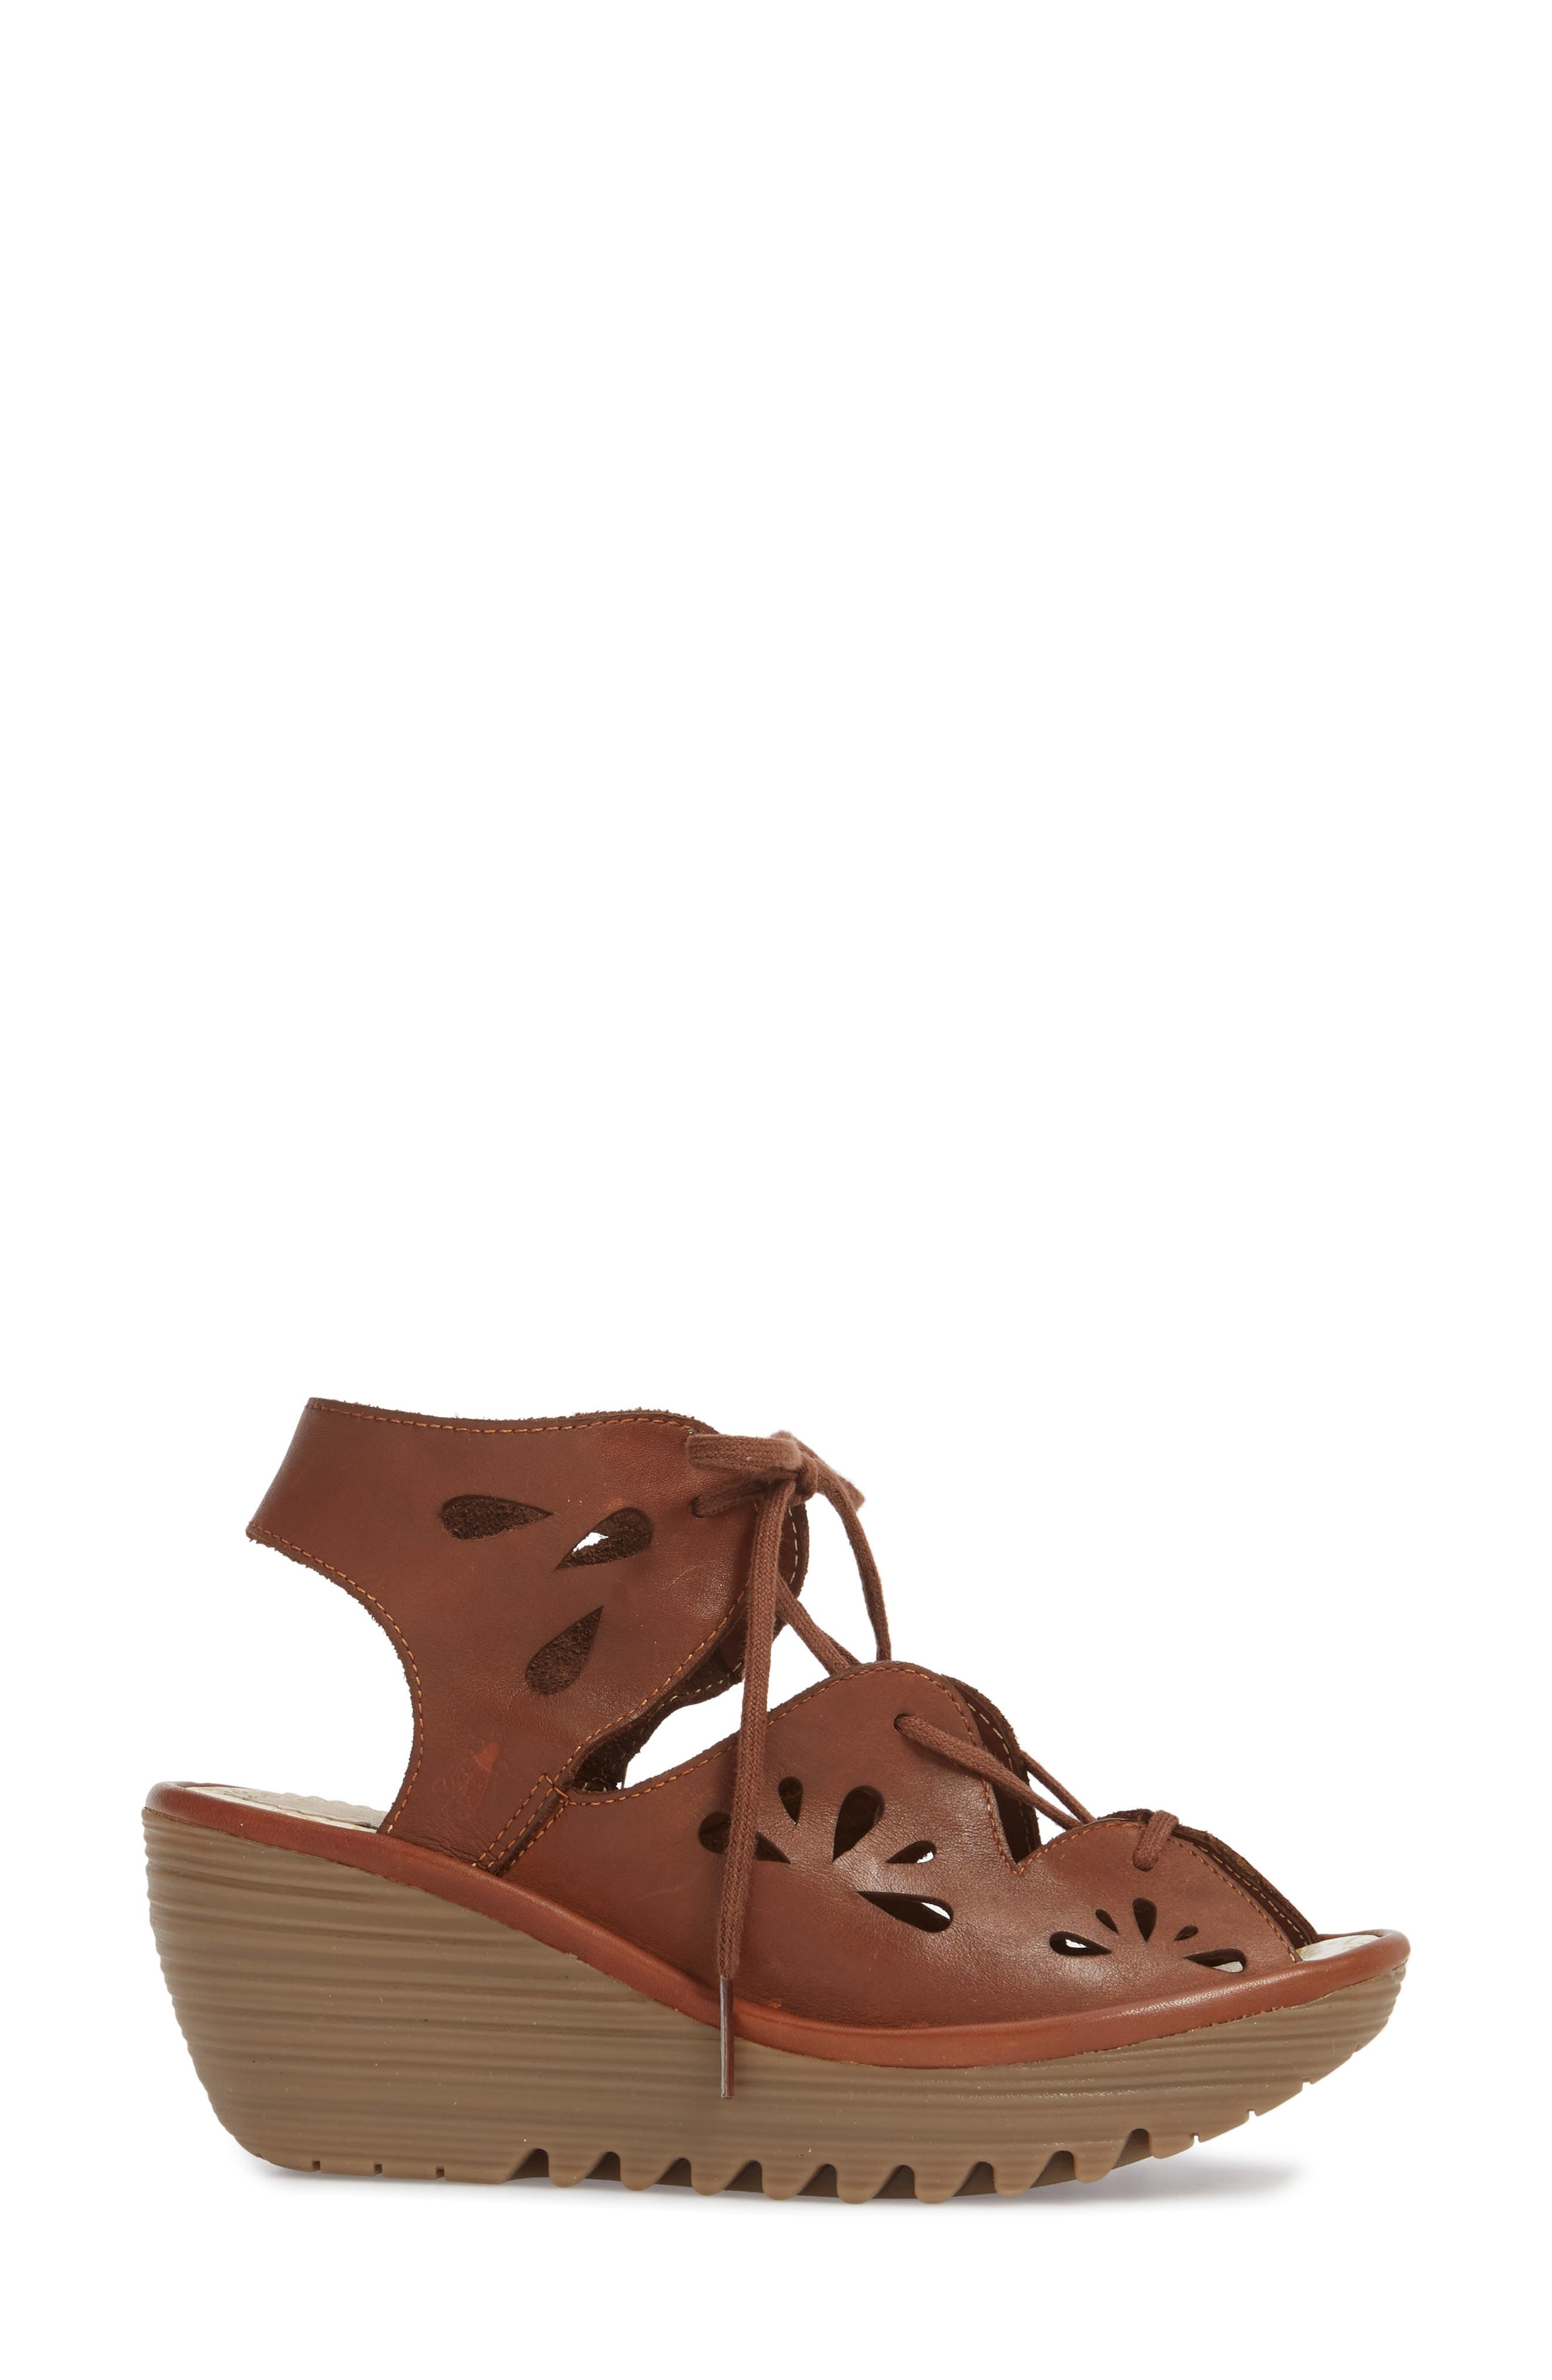 Alternate Image 3  - Fly London Yote Sandal (Women)